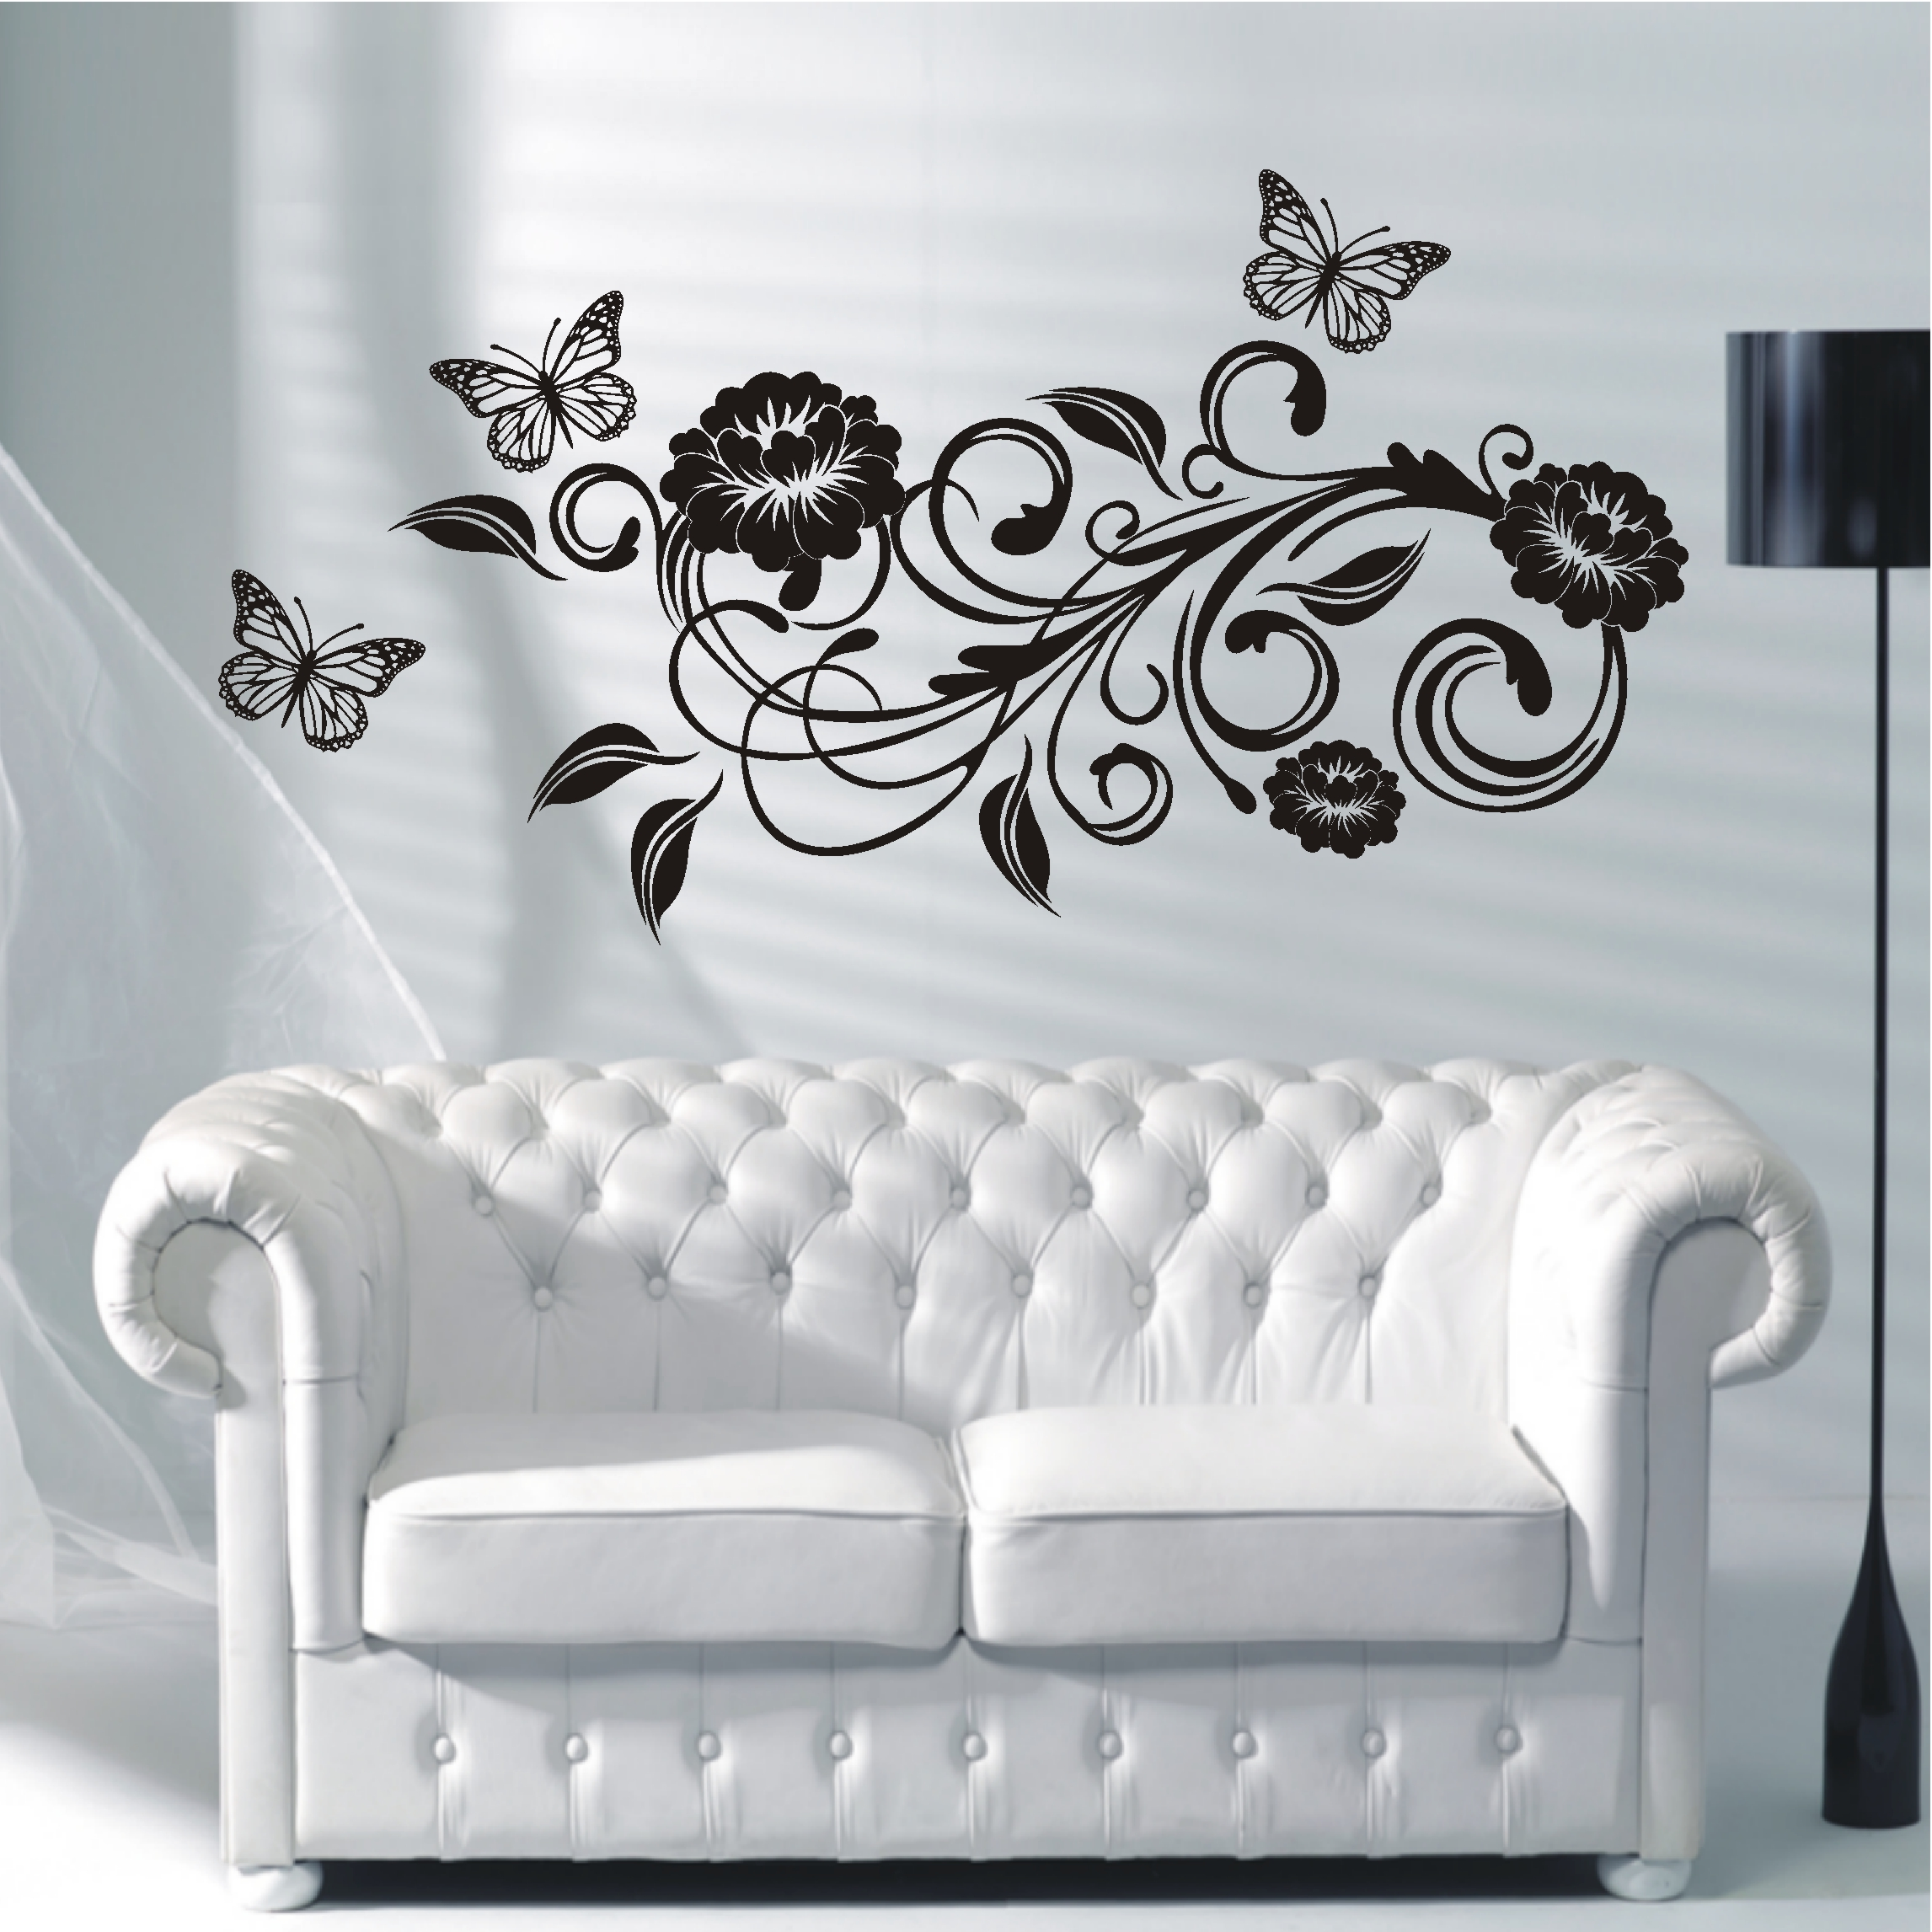 deko shop wandtattoo blumenranke deko shop. Black Bedroom Furniture Sets. Home Design Ideas